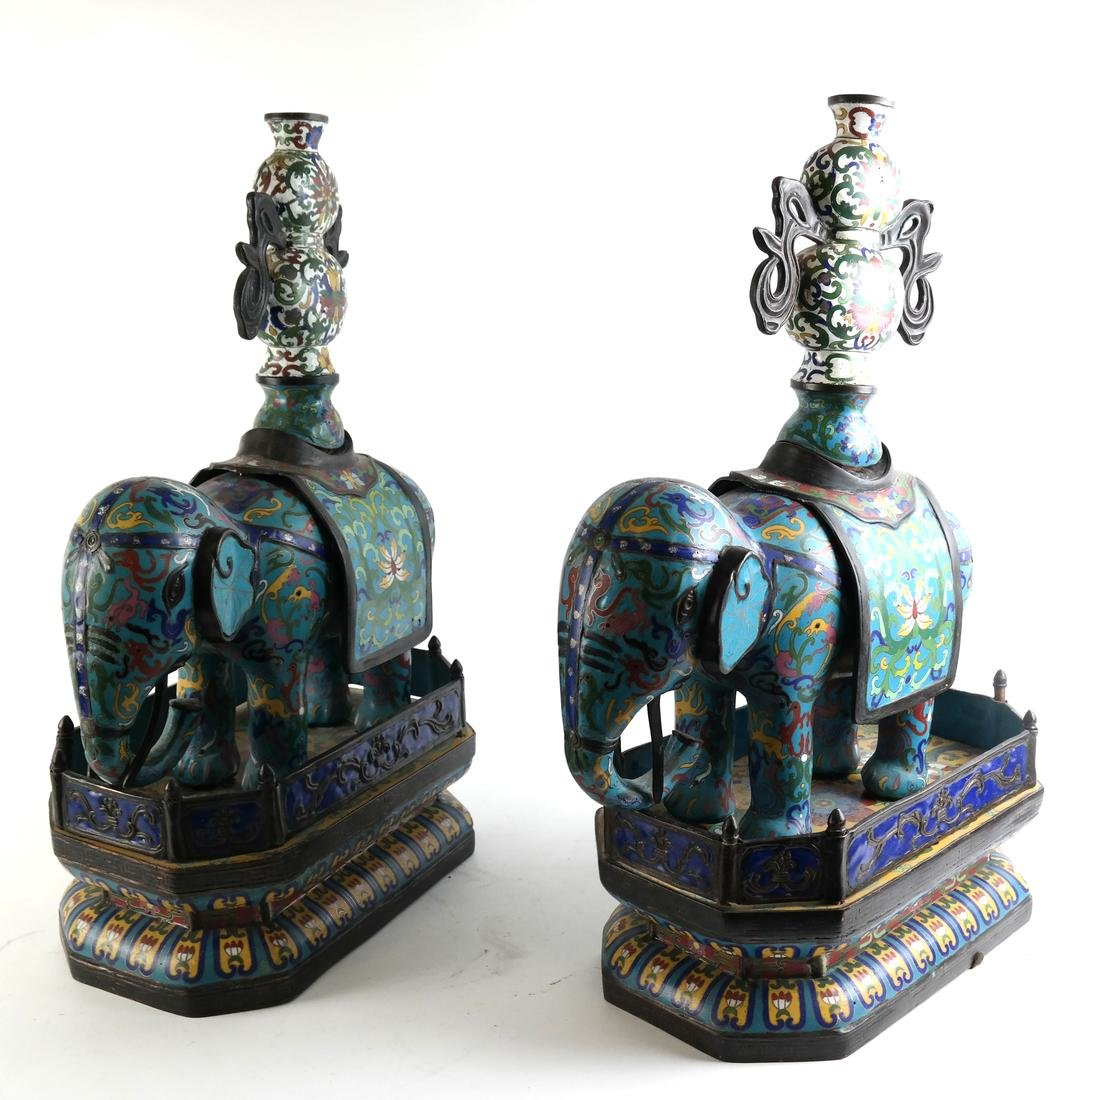 Pr Chinese Cloisonne Elephants with Vase - 2